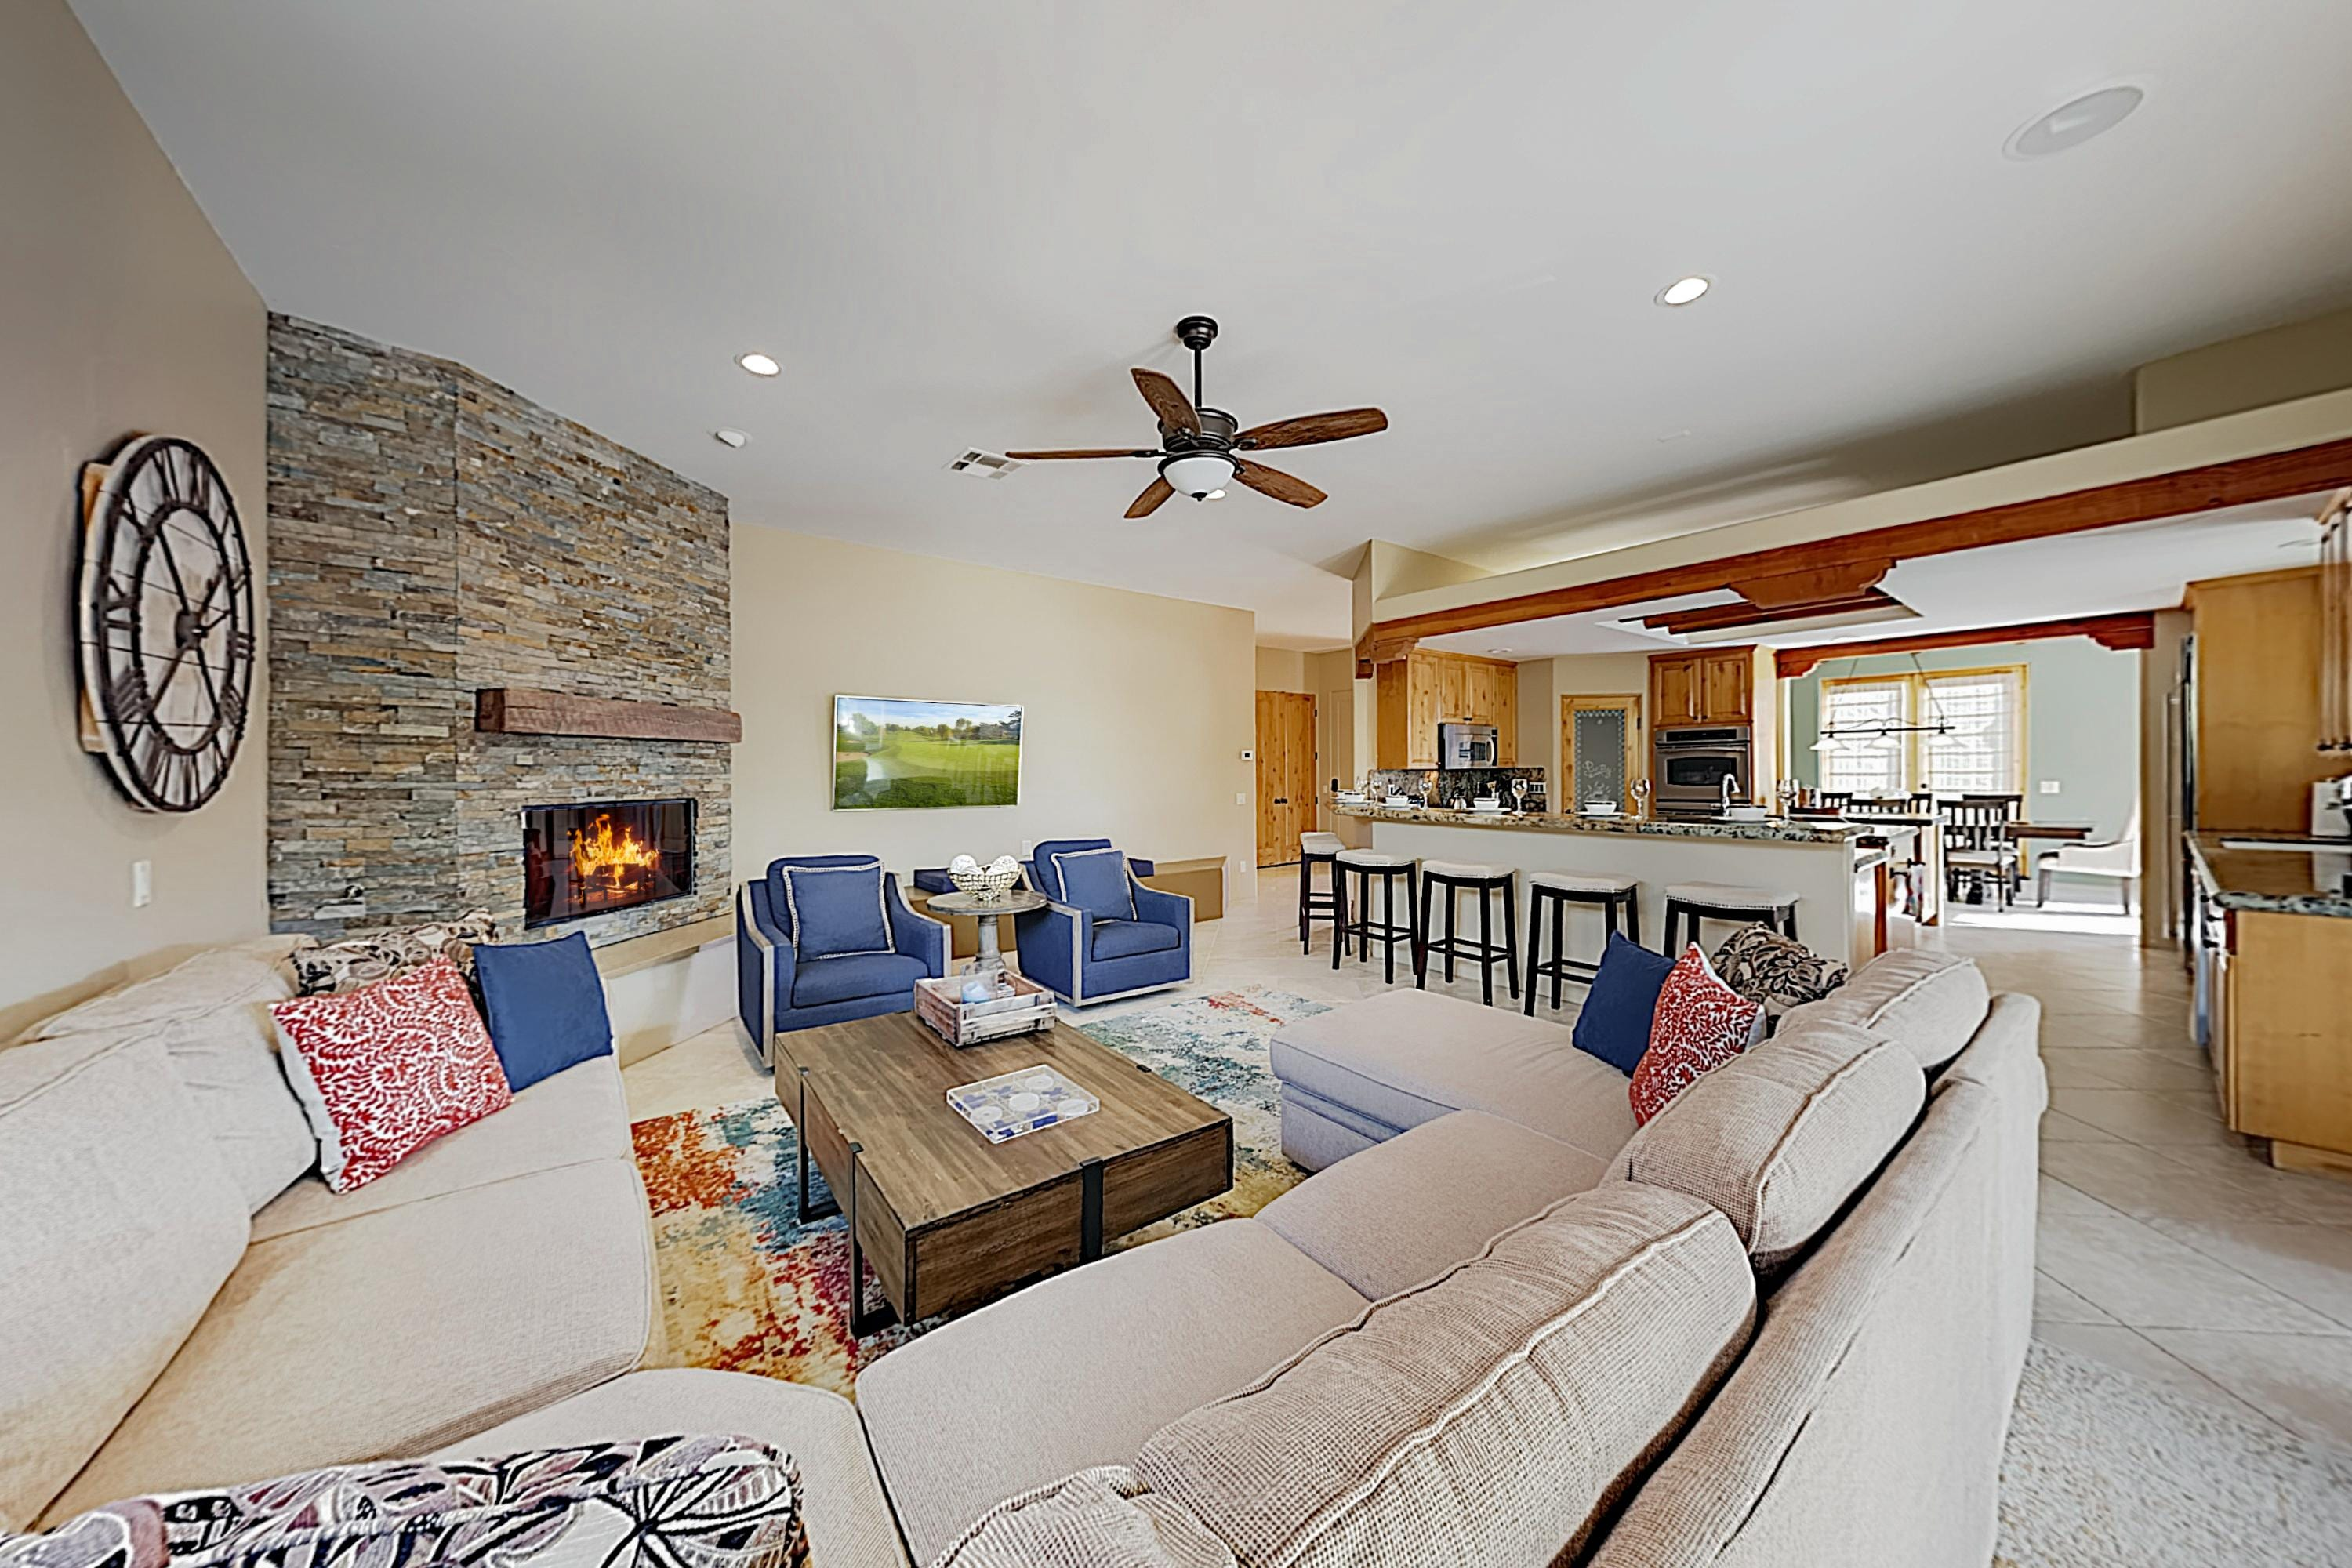 Unwind on the plush sectional and 2 armchairs in the living area.